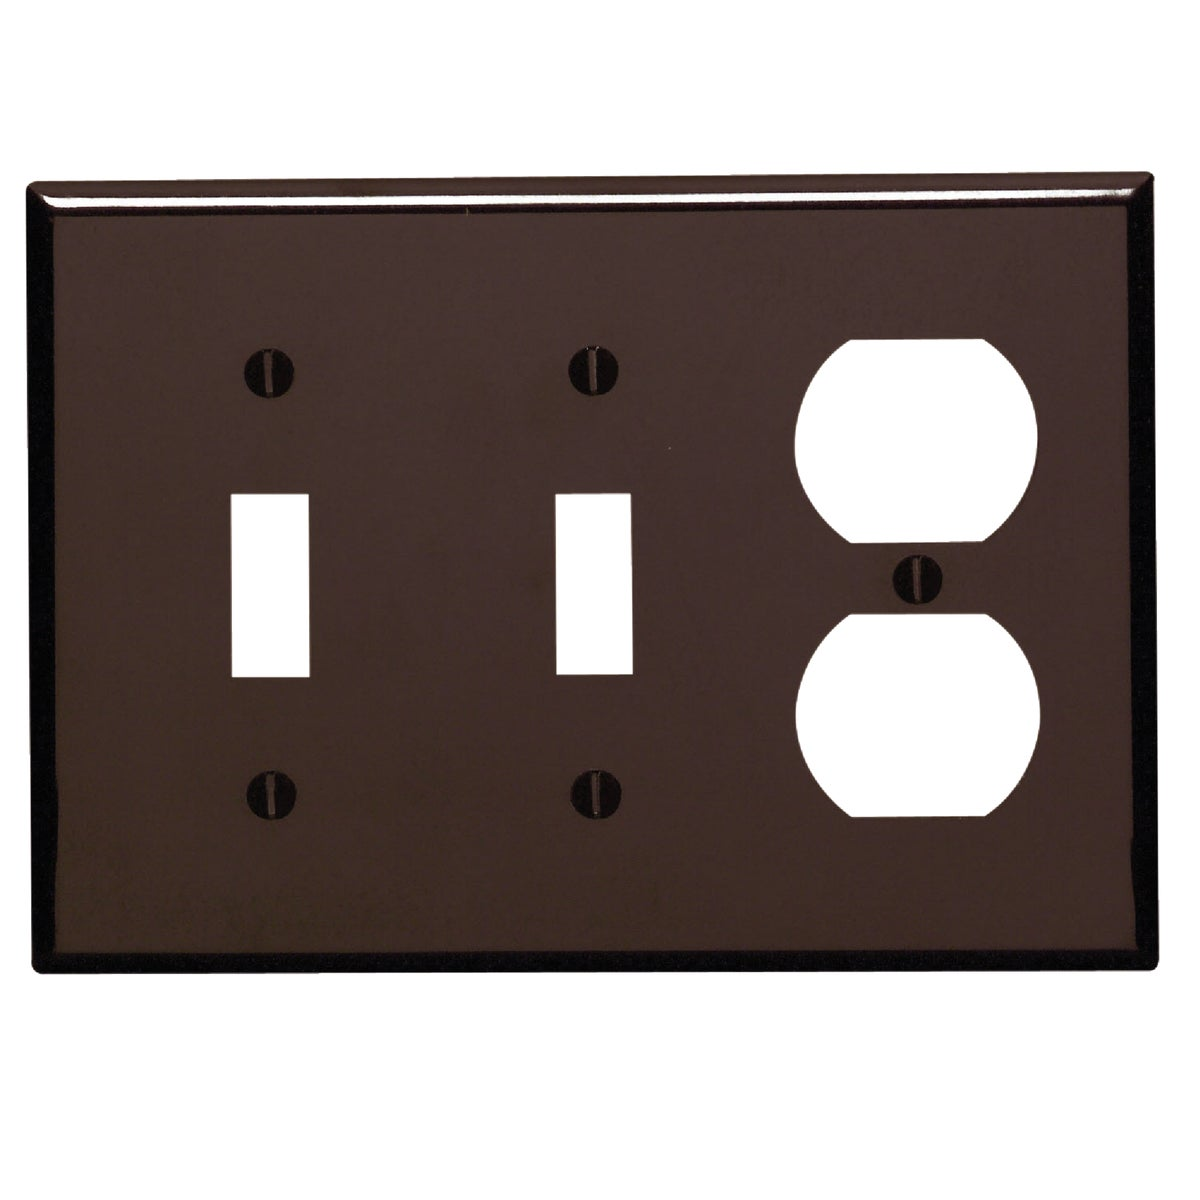 BRN 2TOGL/OUT WALL PLATE - 85021 by Leviton Mfg Co